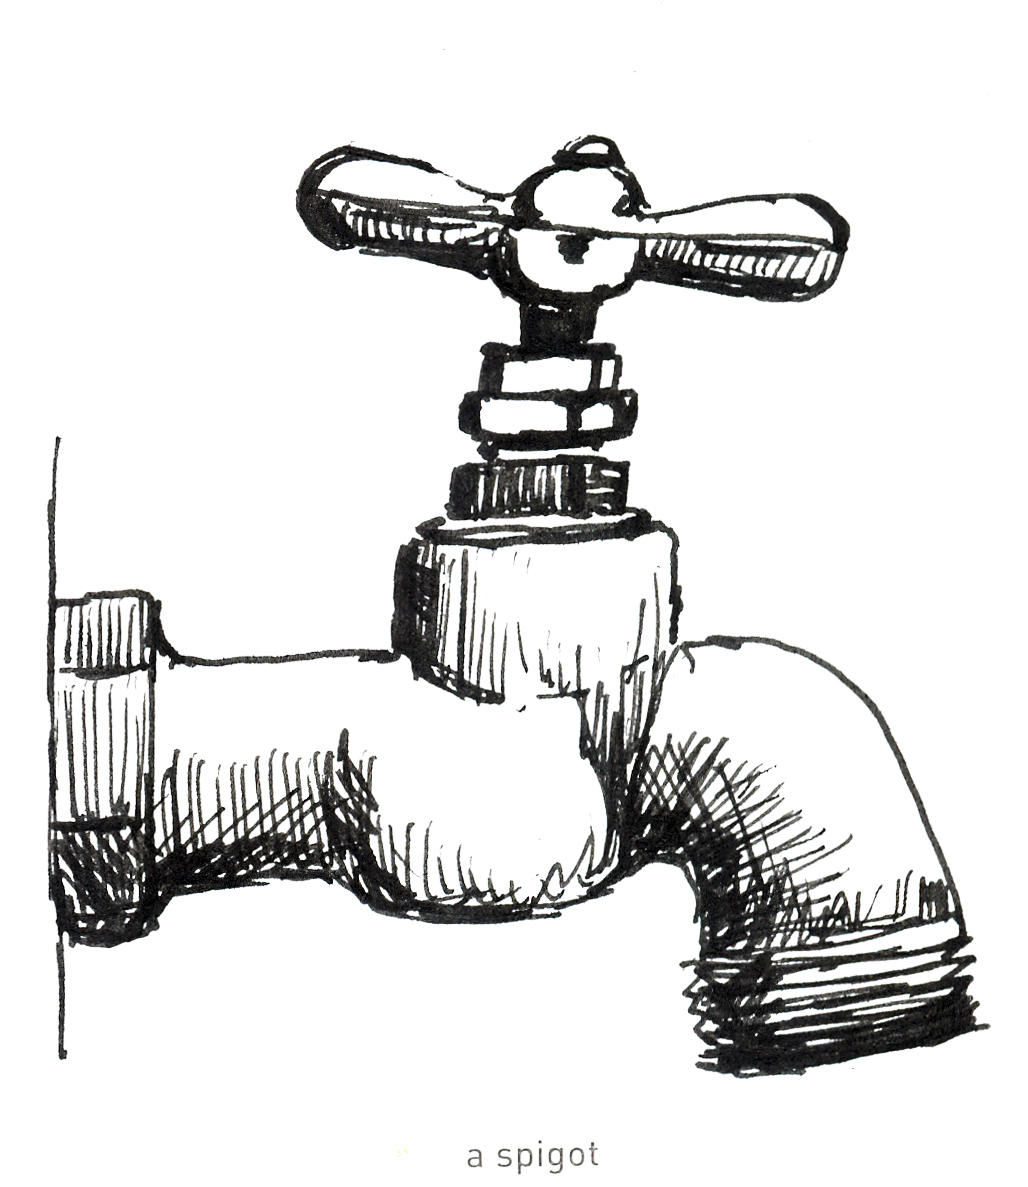 Ana\'s Strictly Sketchbook: 642 Things to Draw #33 - A Spigot